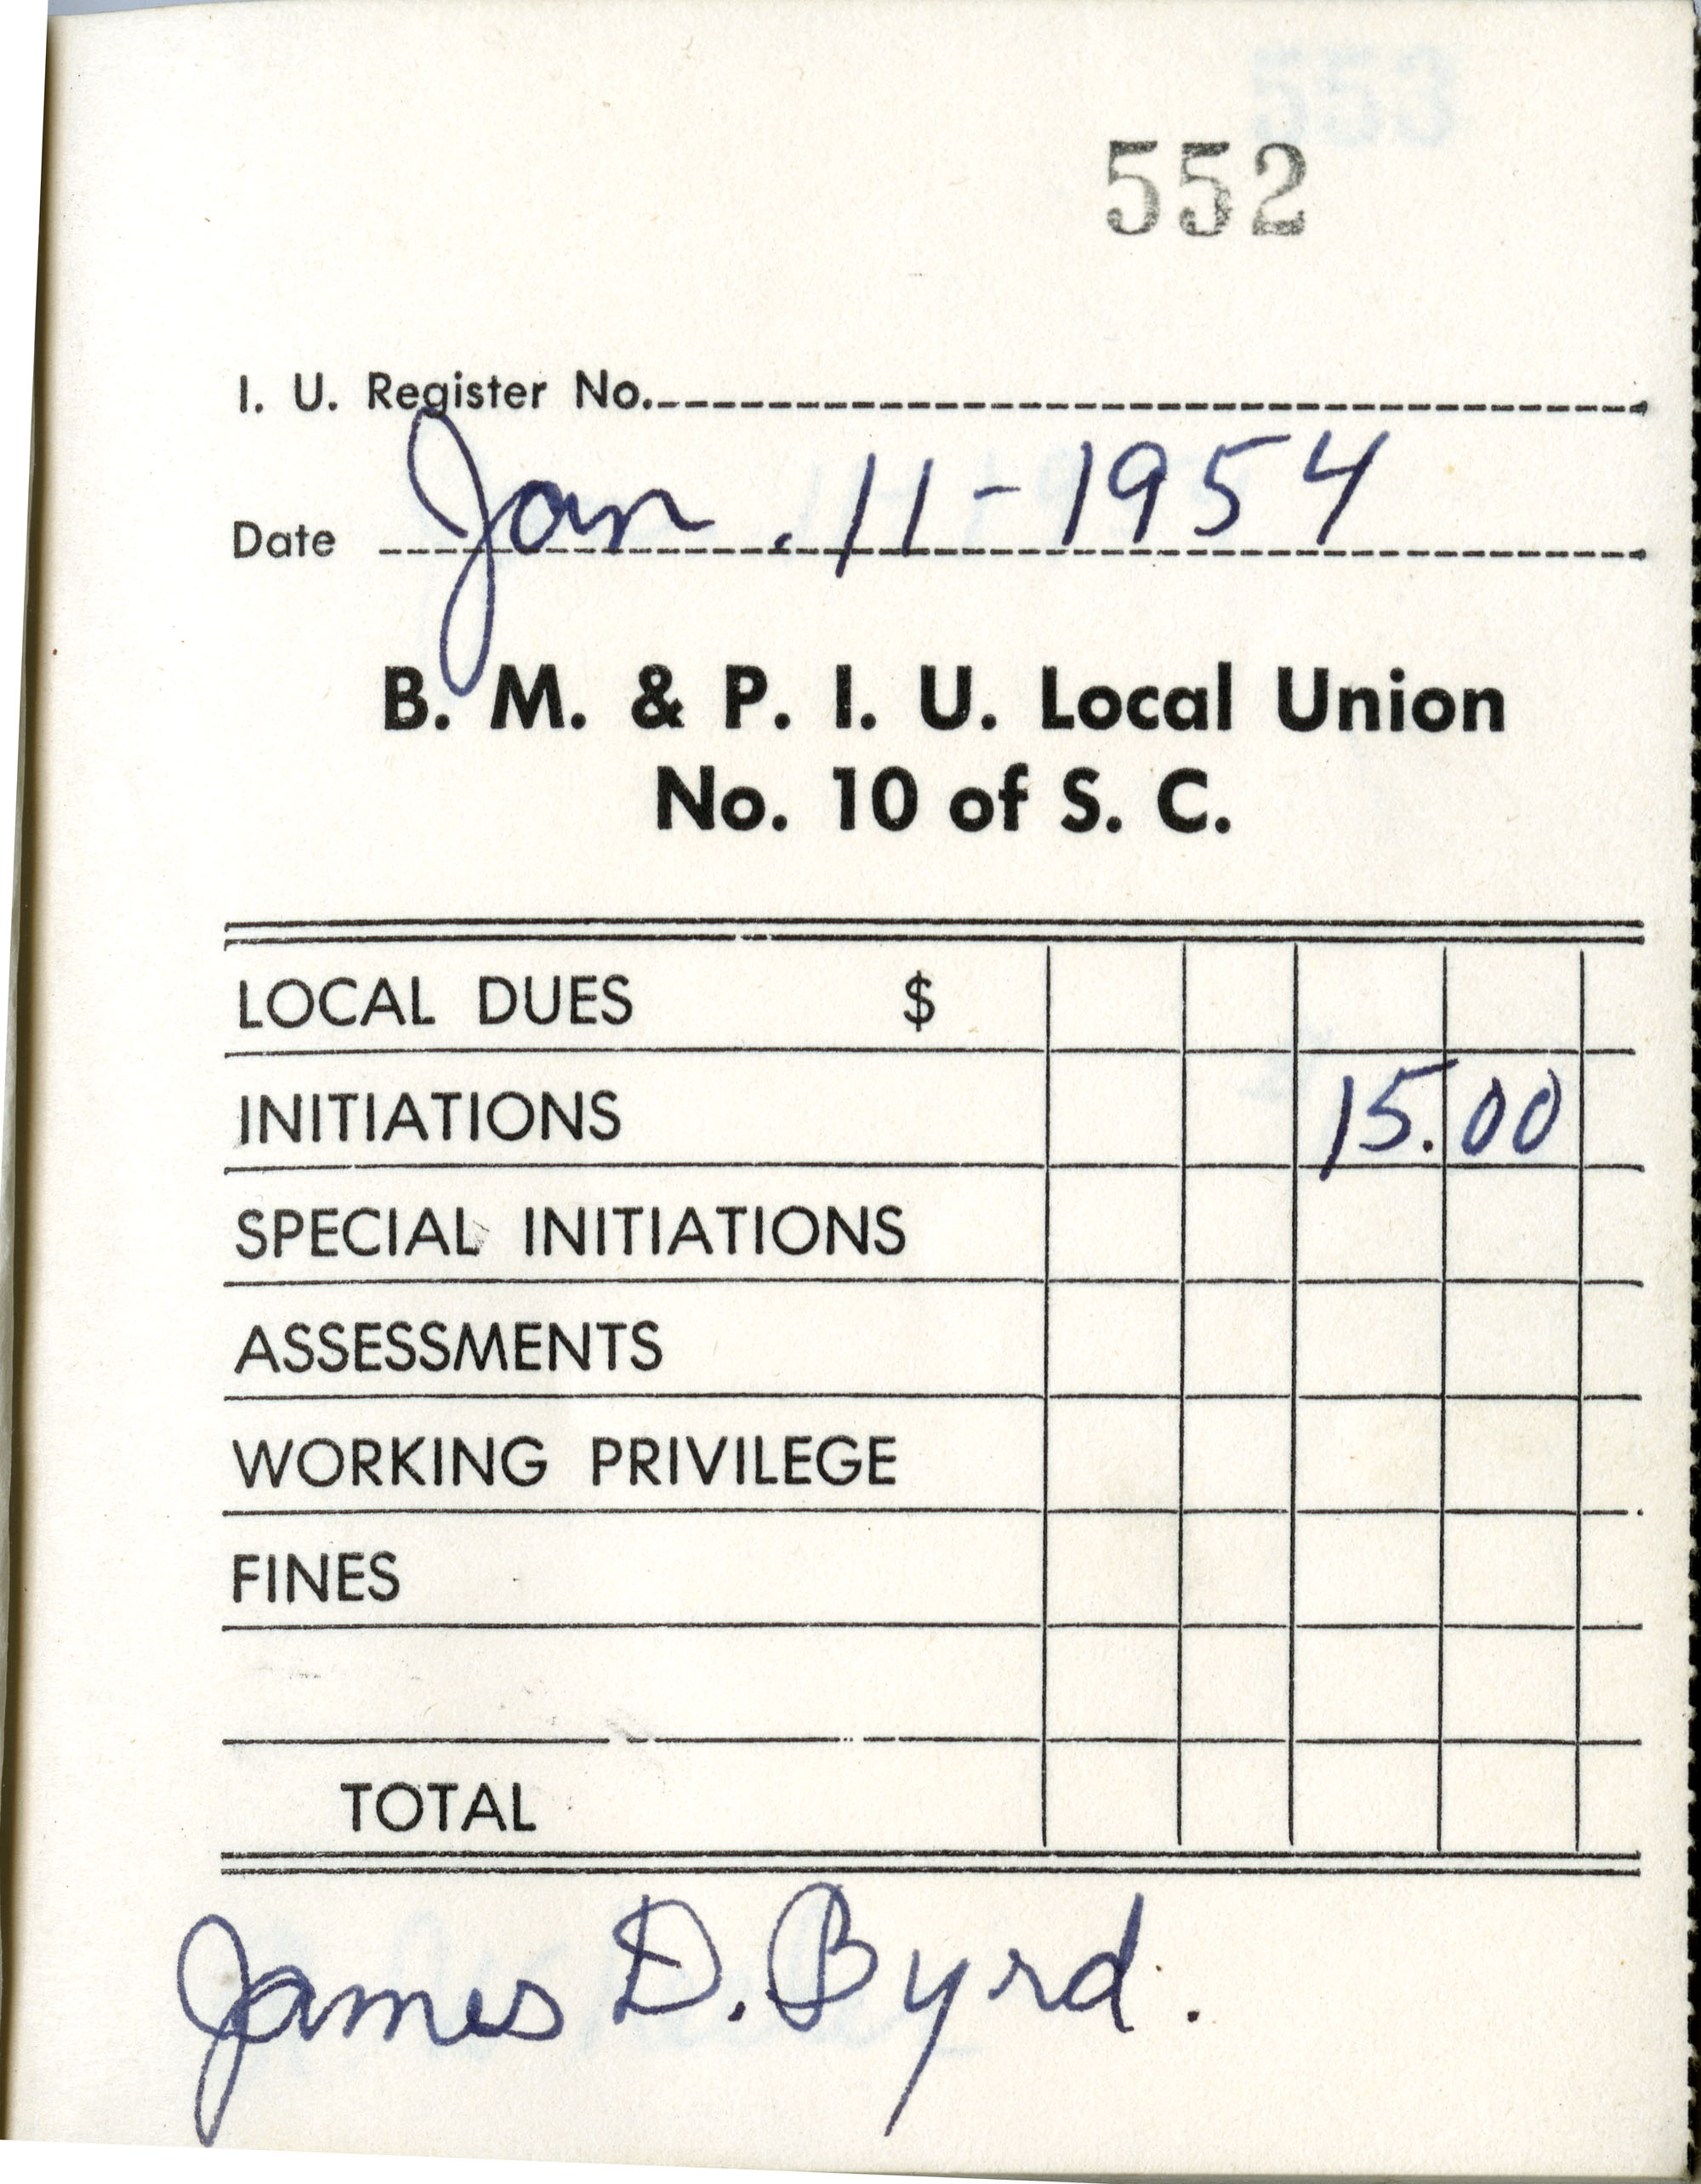 Receipt Book 6, Page 3